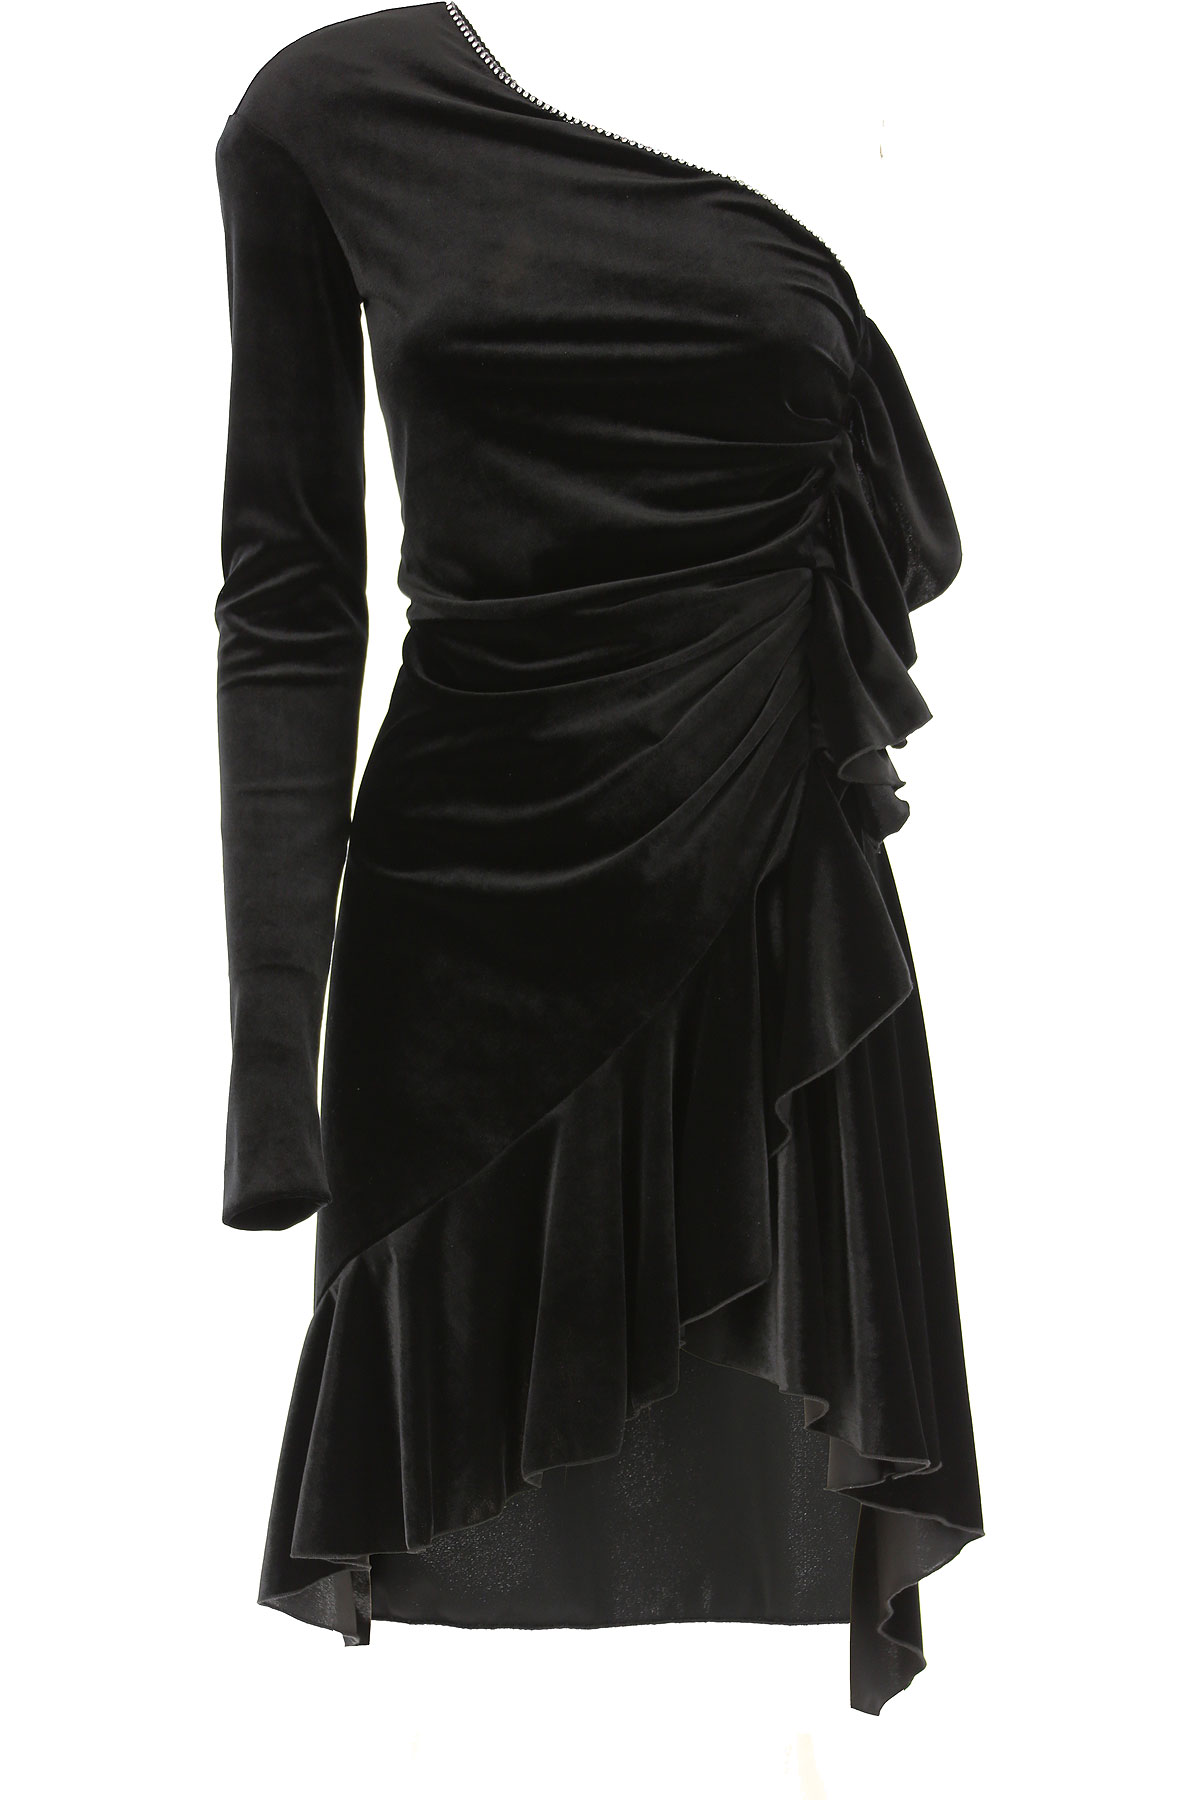 Philosophy di Lorenzo Serafini Dress for Women, Evening Cocktail Party On Sale, Black, polyester, 2019, 4 8